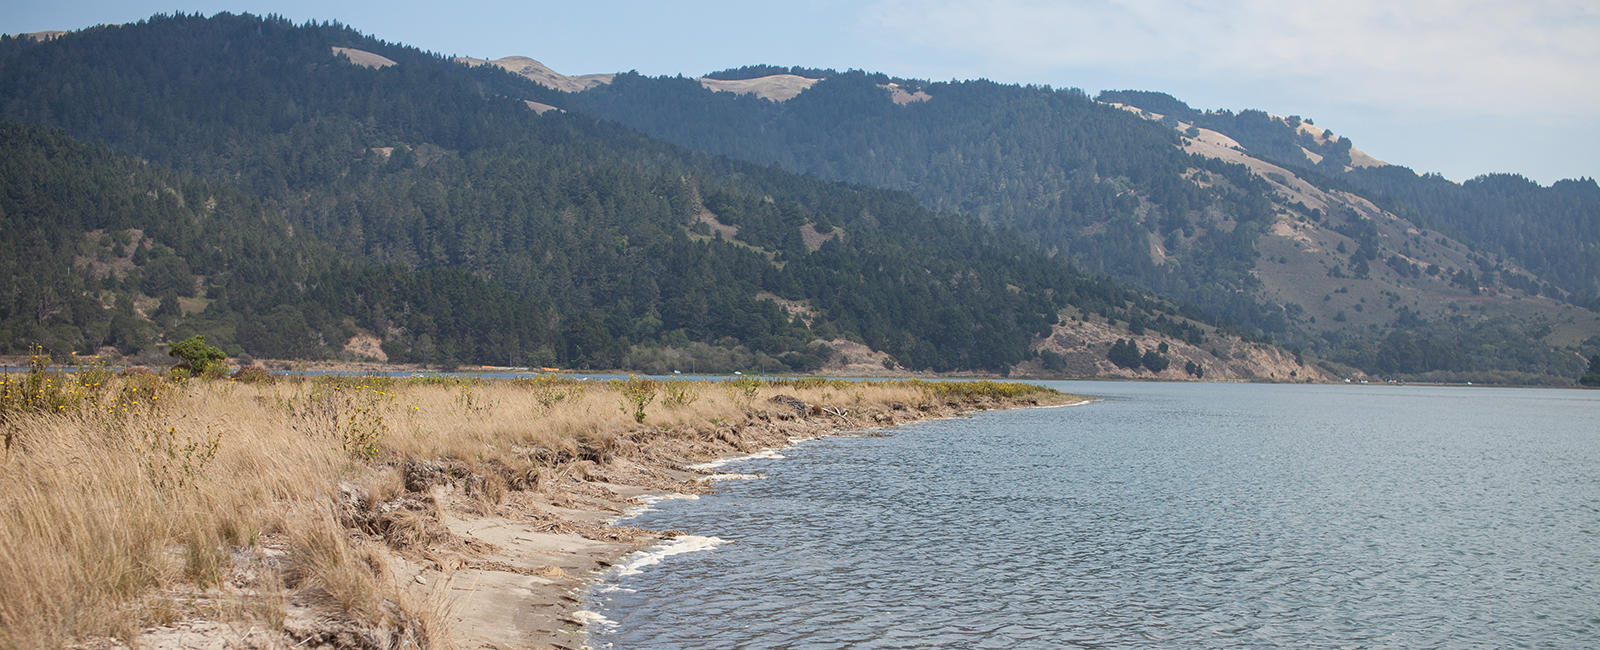 Bolinas Lagoon is host to a wide variety of wildlife.